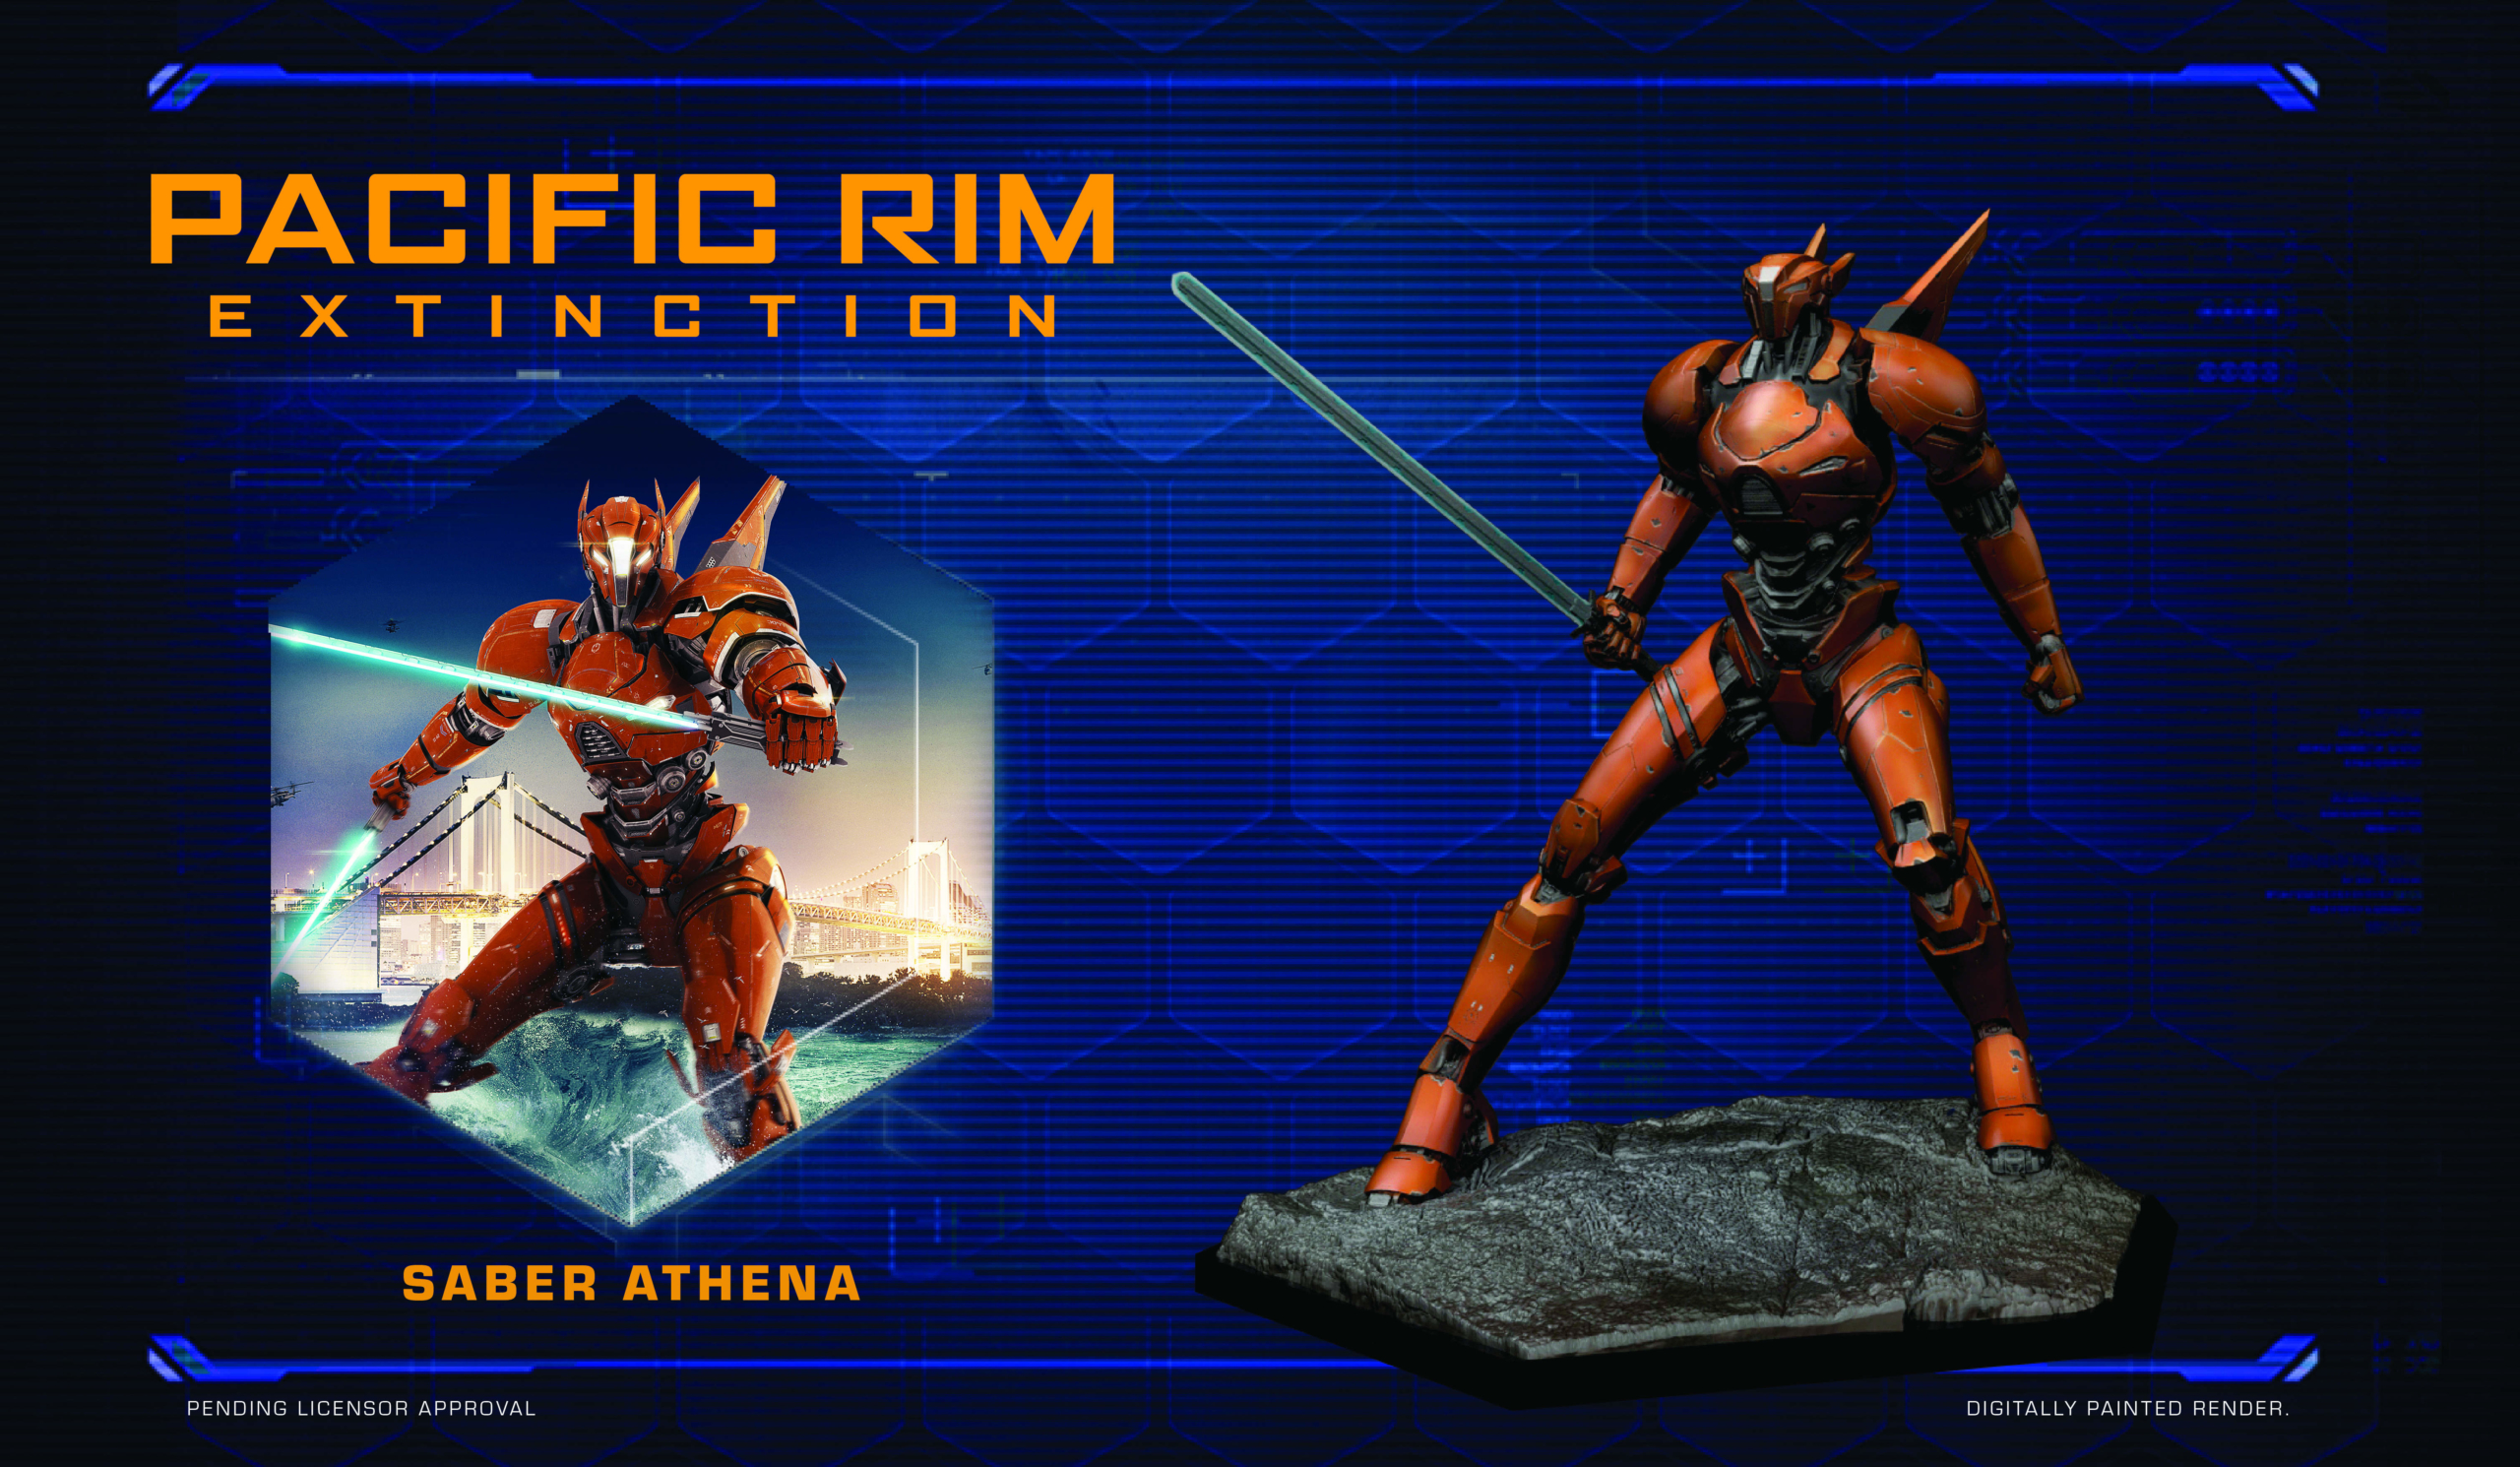 Full colour render of Saber Athena for Pacific Rim: Extinction by River Horse